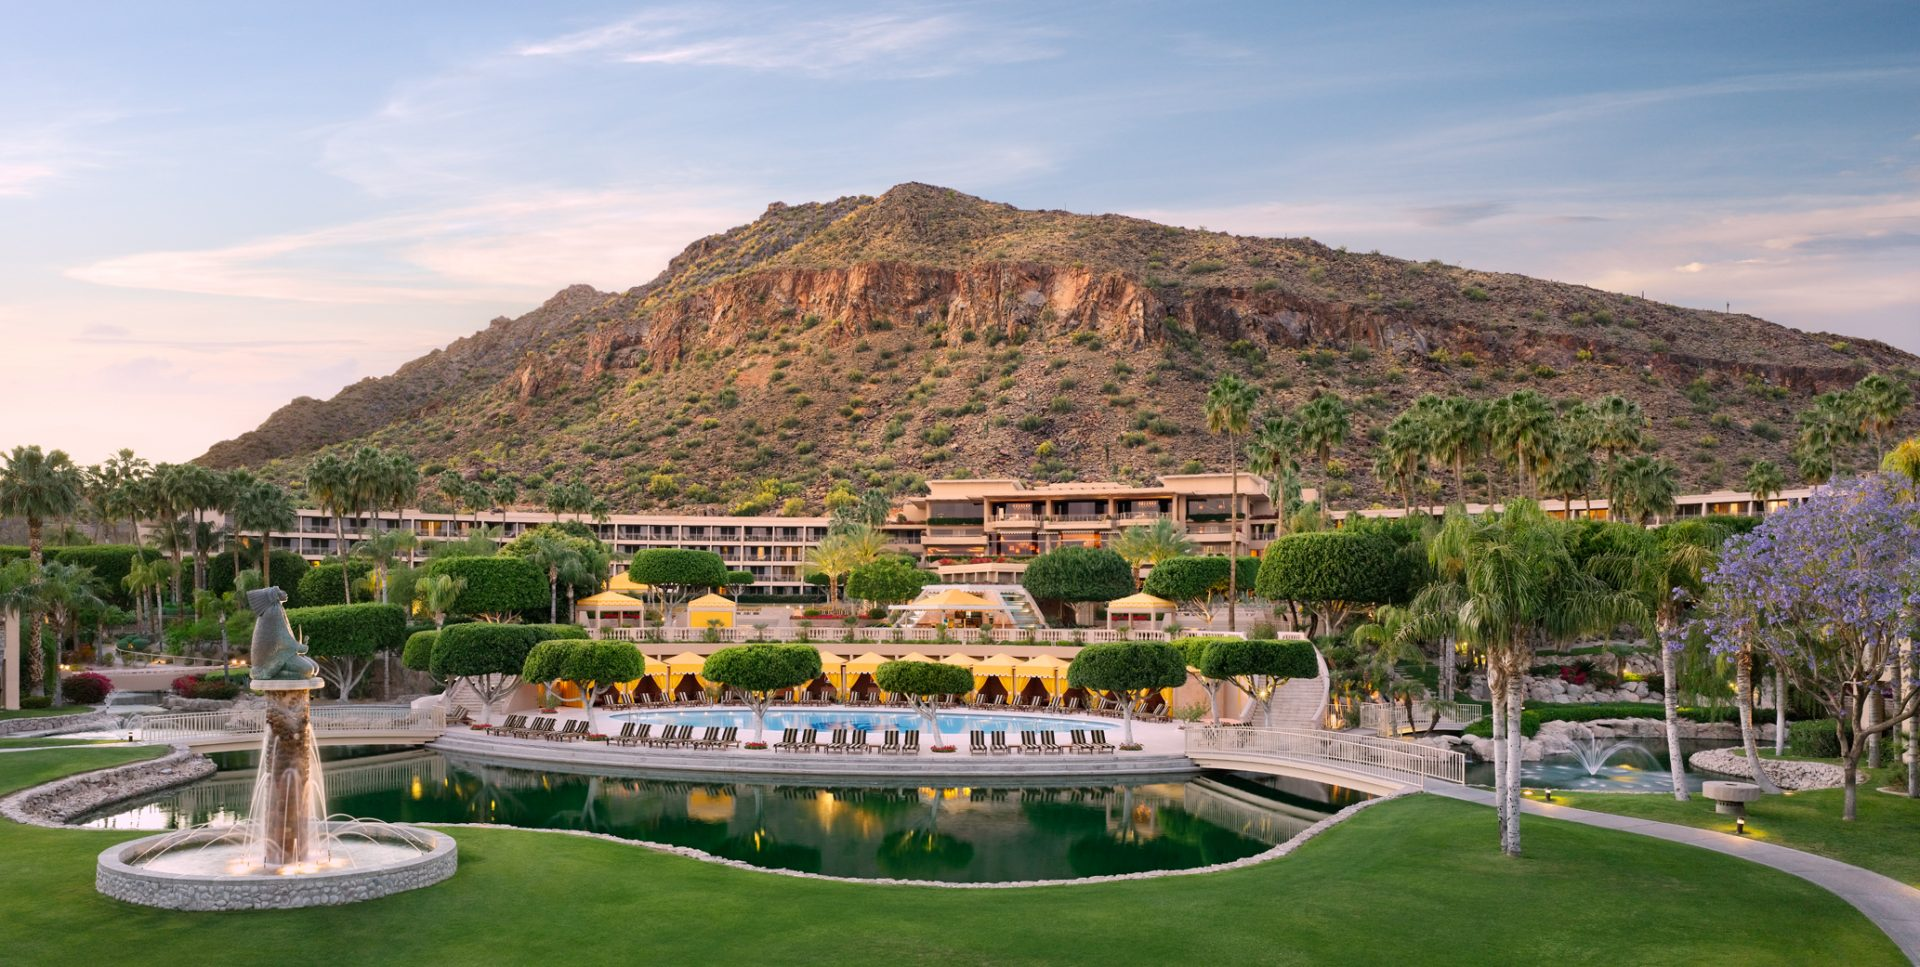 Entrada do The Phoenician, com resort e a Camelback Mountain ao fundo